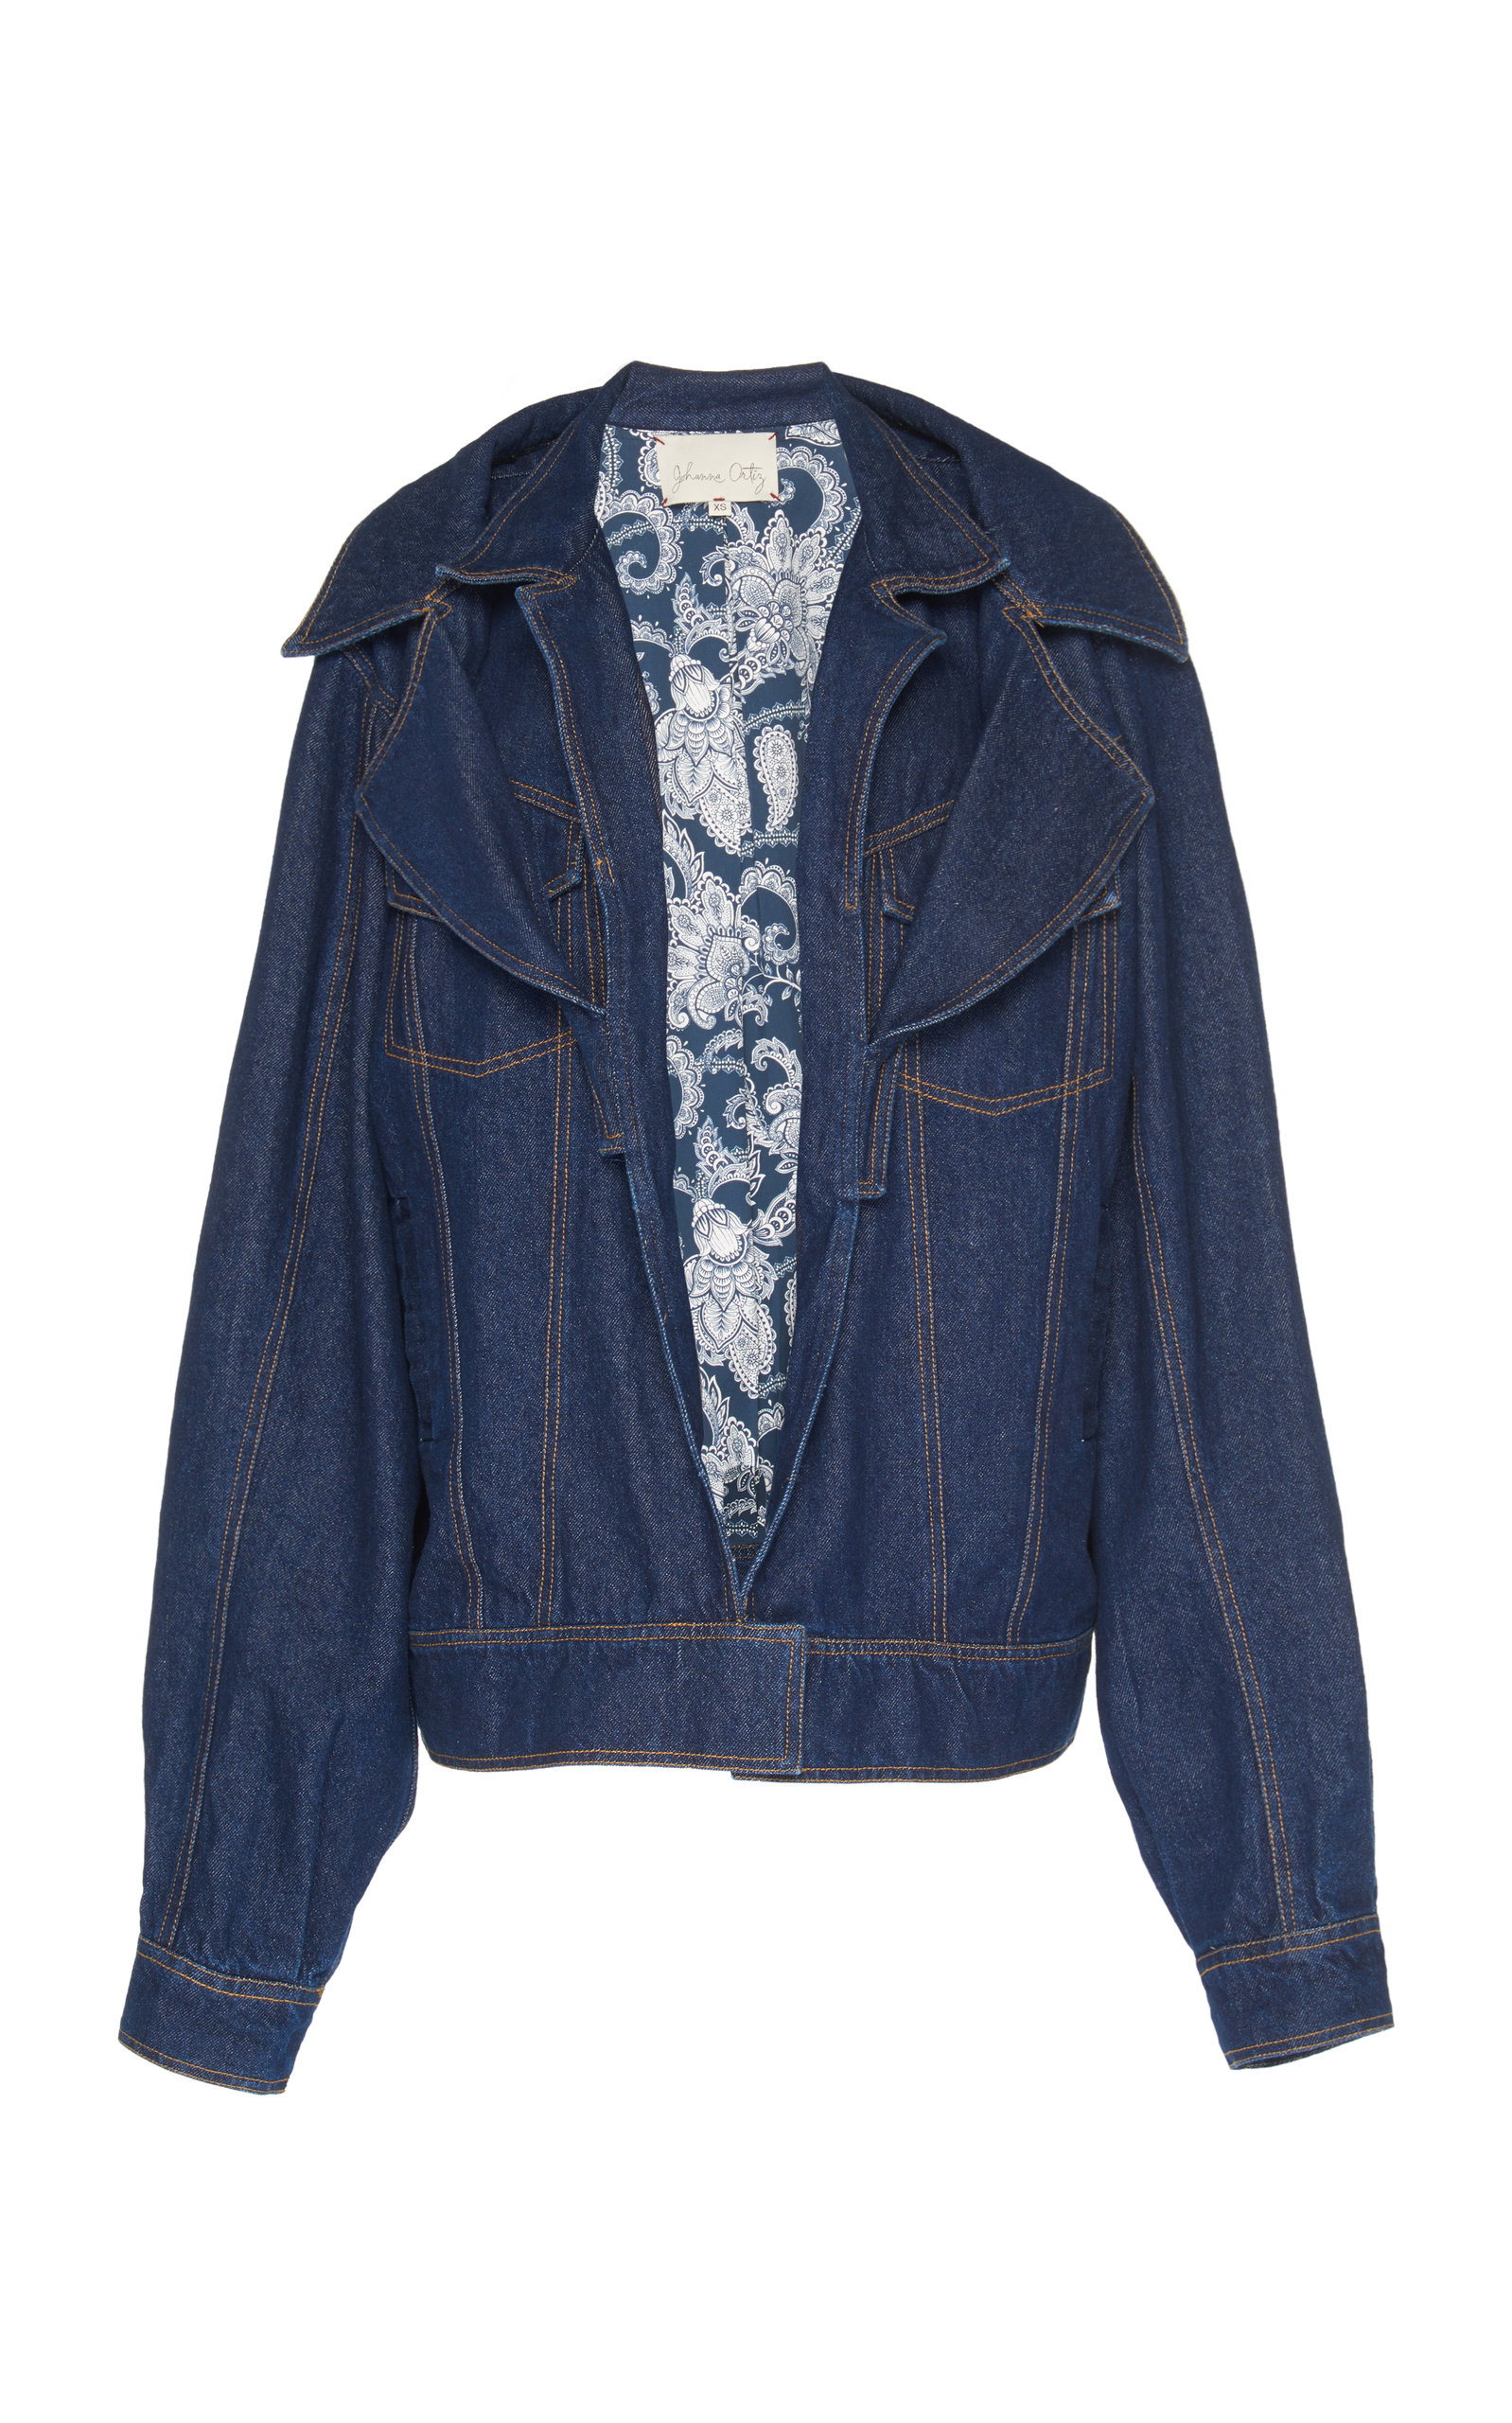 COATS & JACKETS - Jackets Ortys 100% Authentic For Sale Browse Sale Online Comfortable Cheap Price Free Shipping 2018 Unisex Cheap Clearance Store 1FnQA